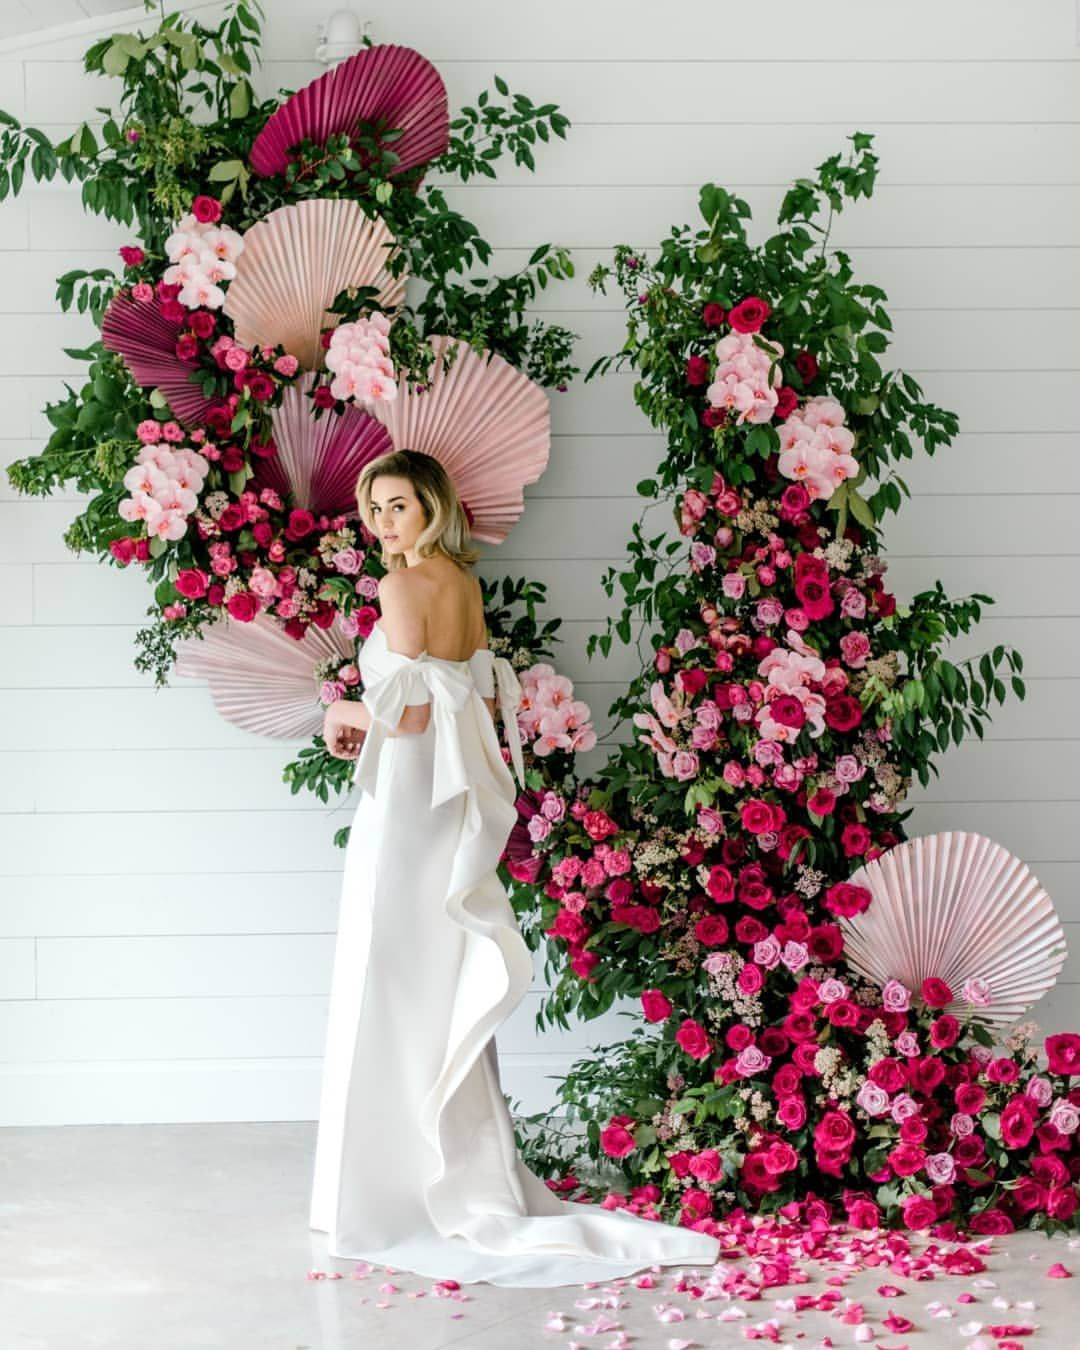 Hey Girl Do You Think Is This Enough Flowers For A Modern Japanese Inspired Crazy Extra Af C Wedding Decorations Wedding Ceremony Decorations Floral Backdrop